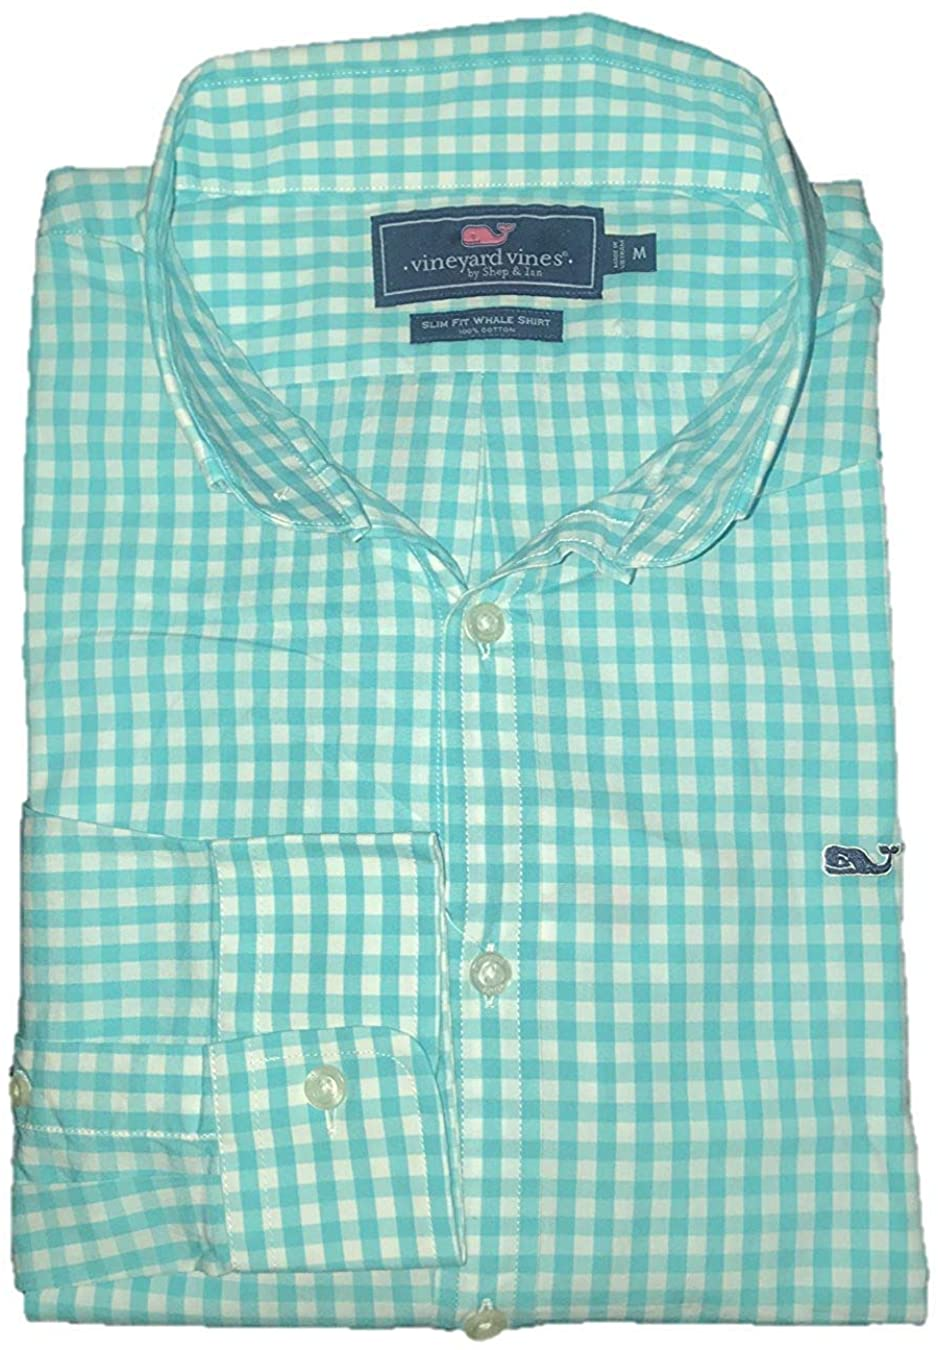 Vineyard Vines Men's Slim Fit Whale Shirt Button Down Dress Shirt